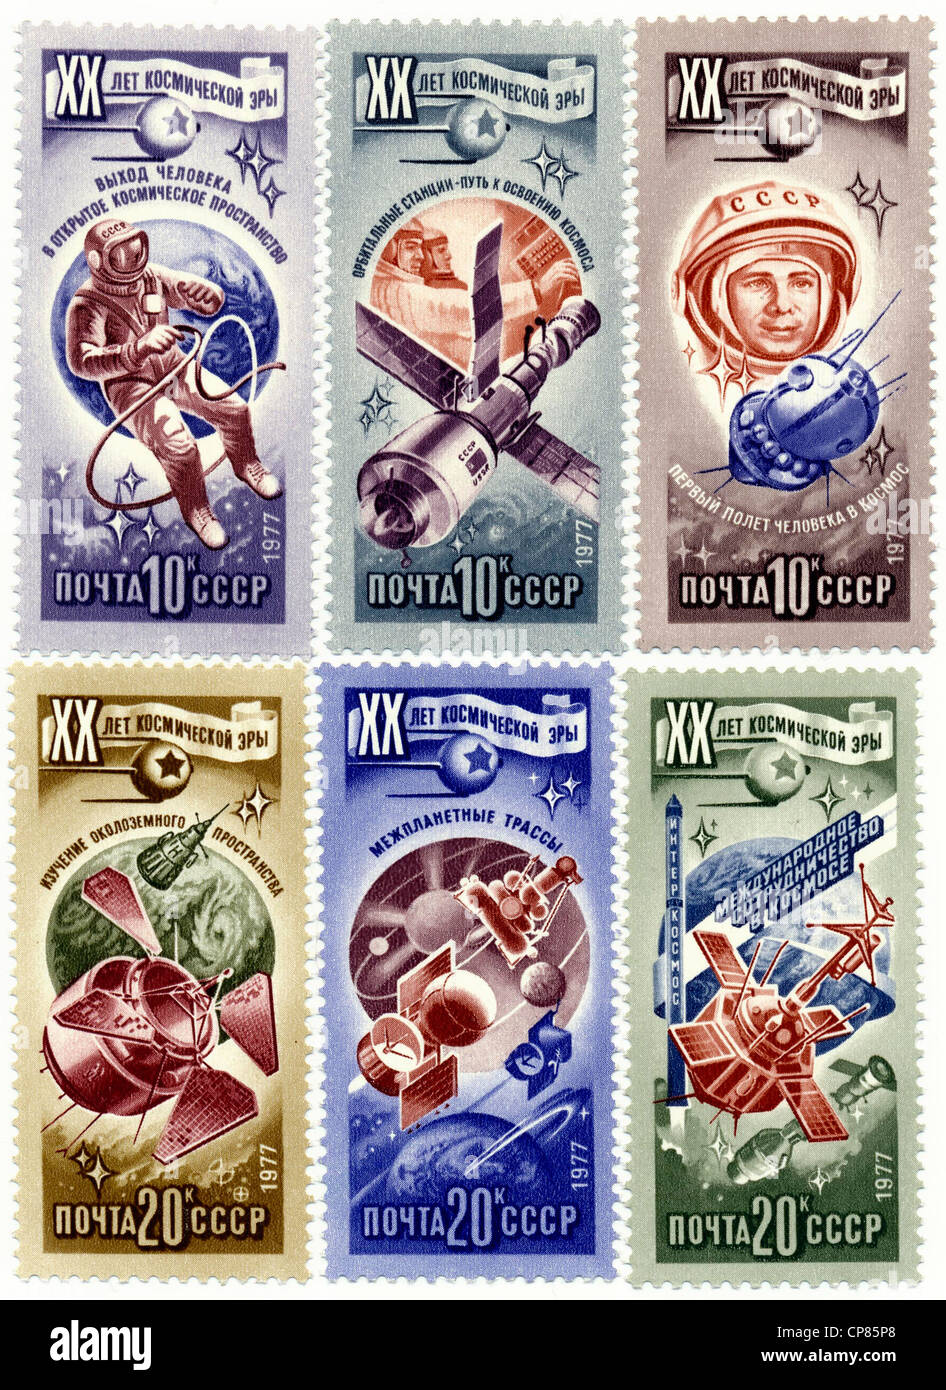 Historic postage stamps of the USSR, 20th Anniversary of the Space Age, the first man in space, Historische Briefmarke, - Stock Image